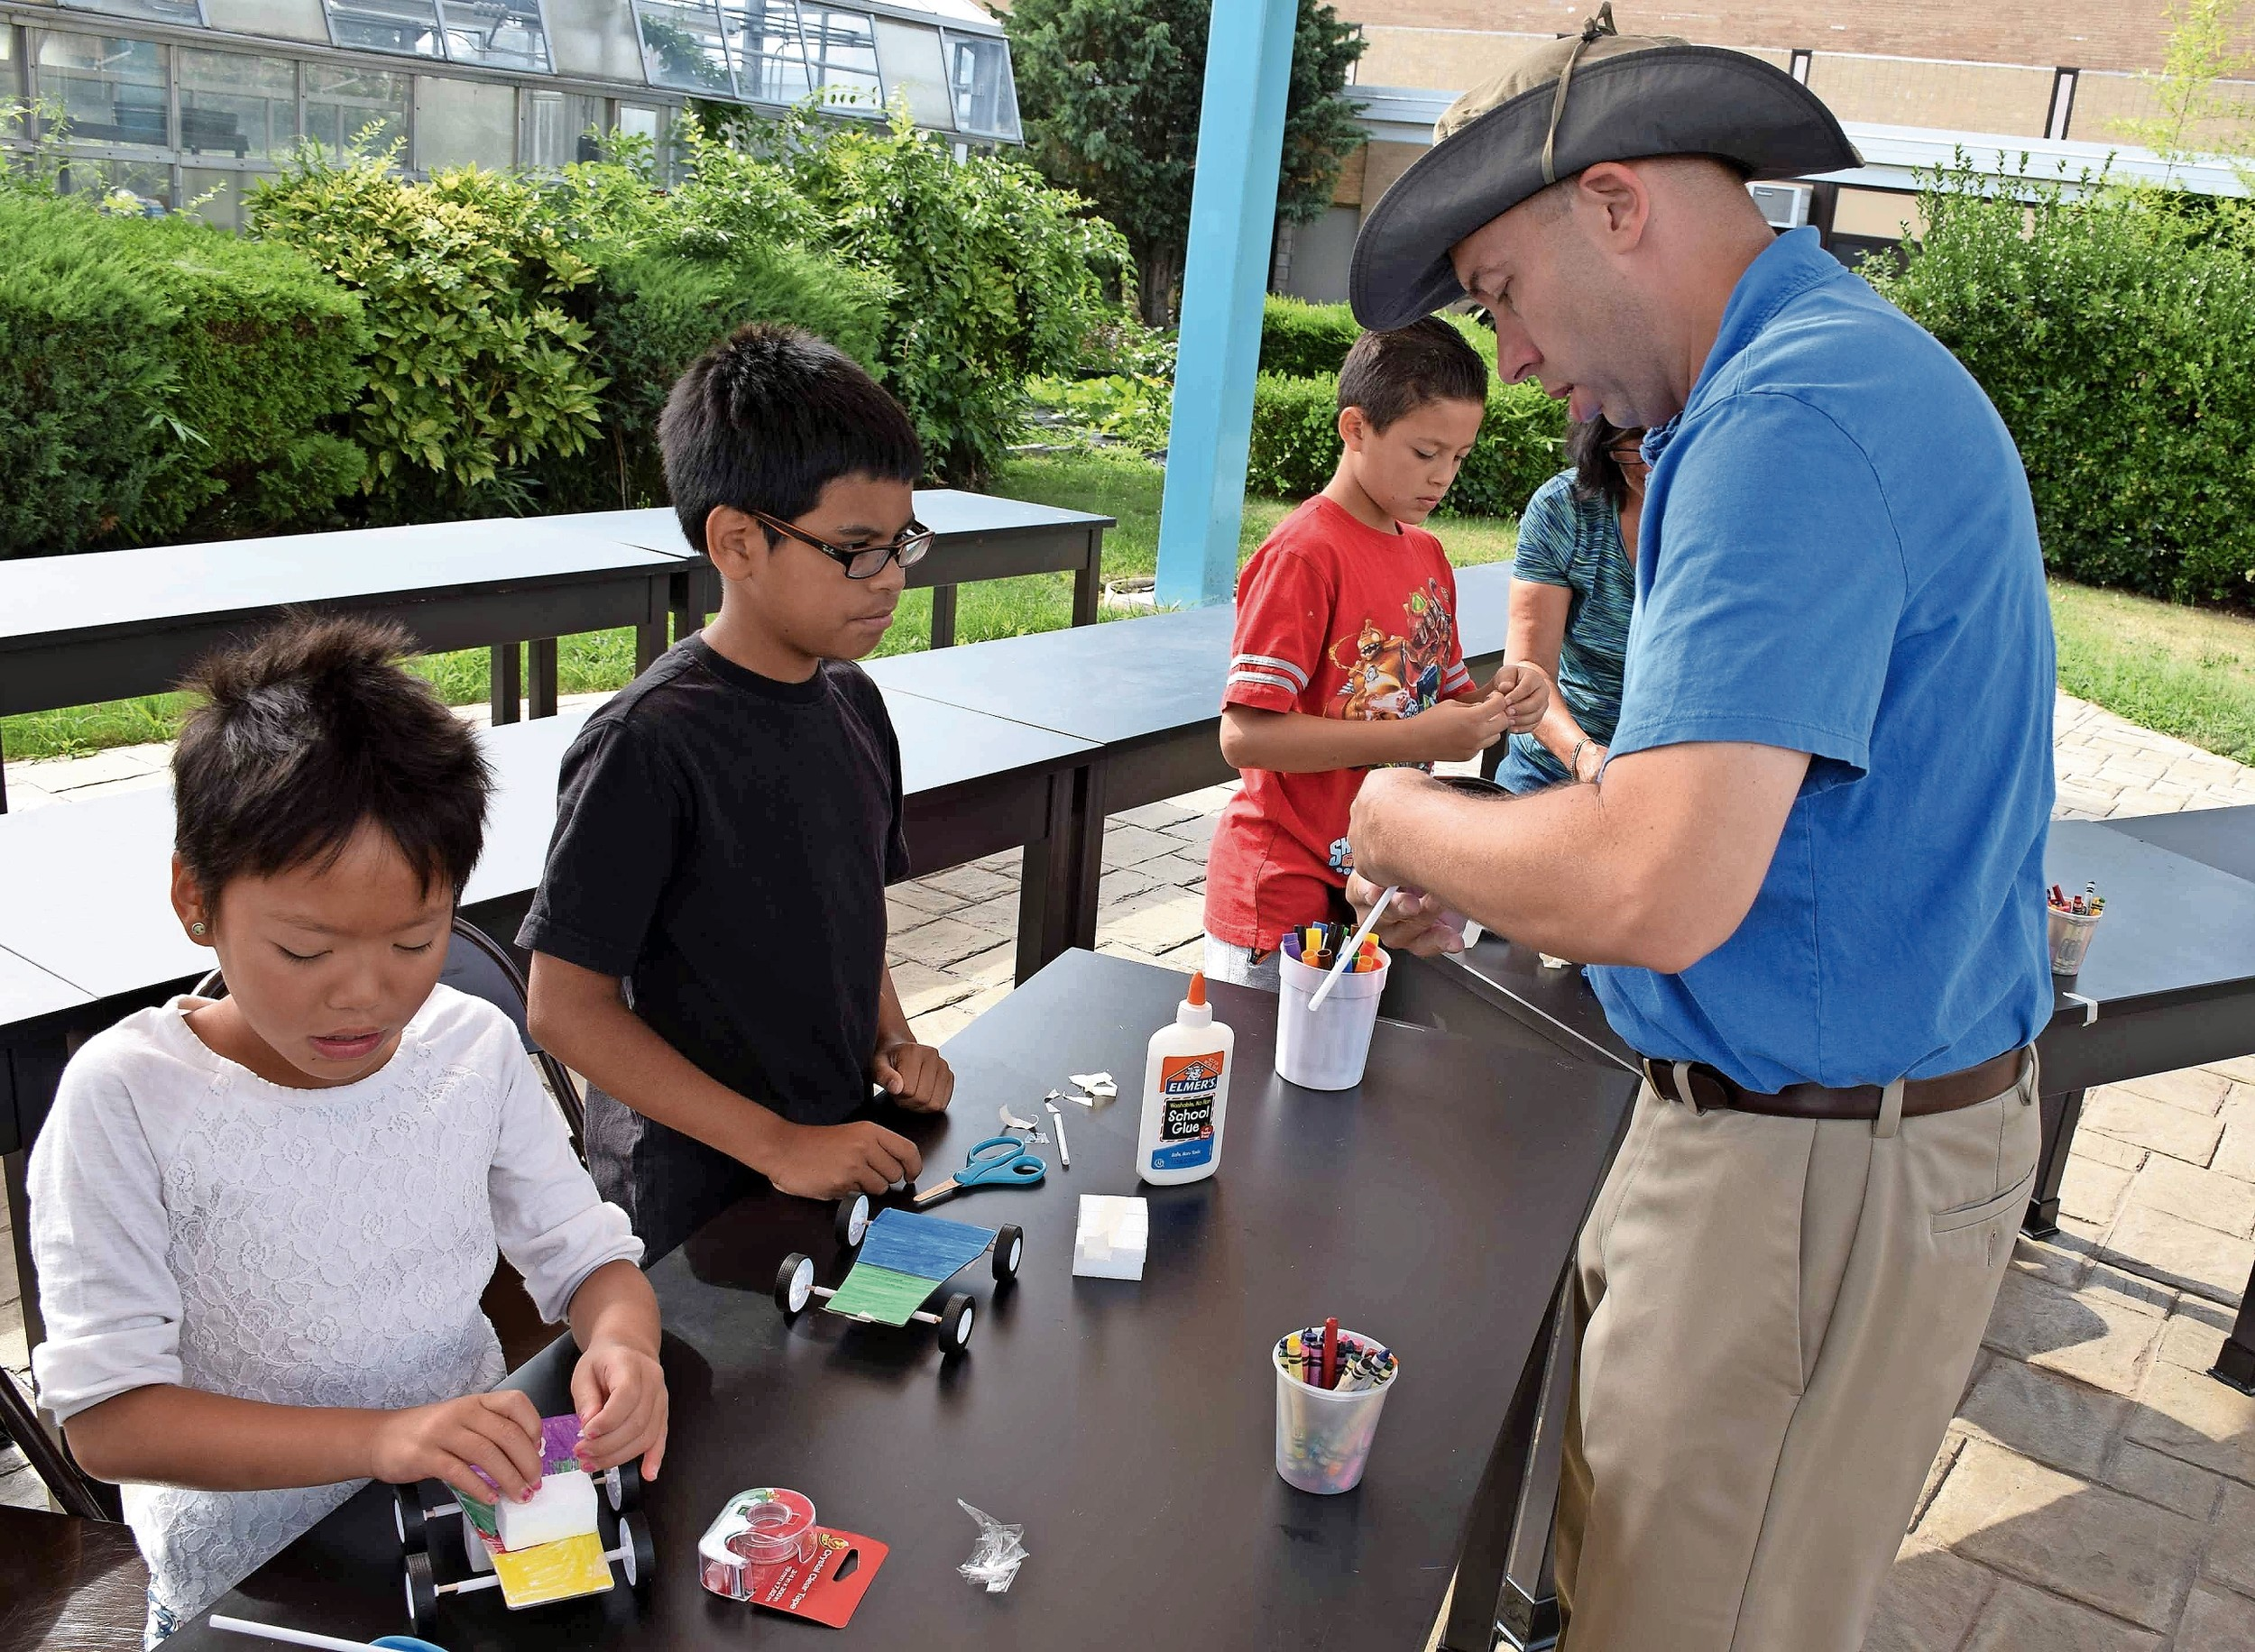 Frank Martin, a science teacher at Jonas Salk Middle School, worked with students as they designed race cars in the STEM class.